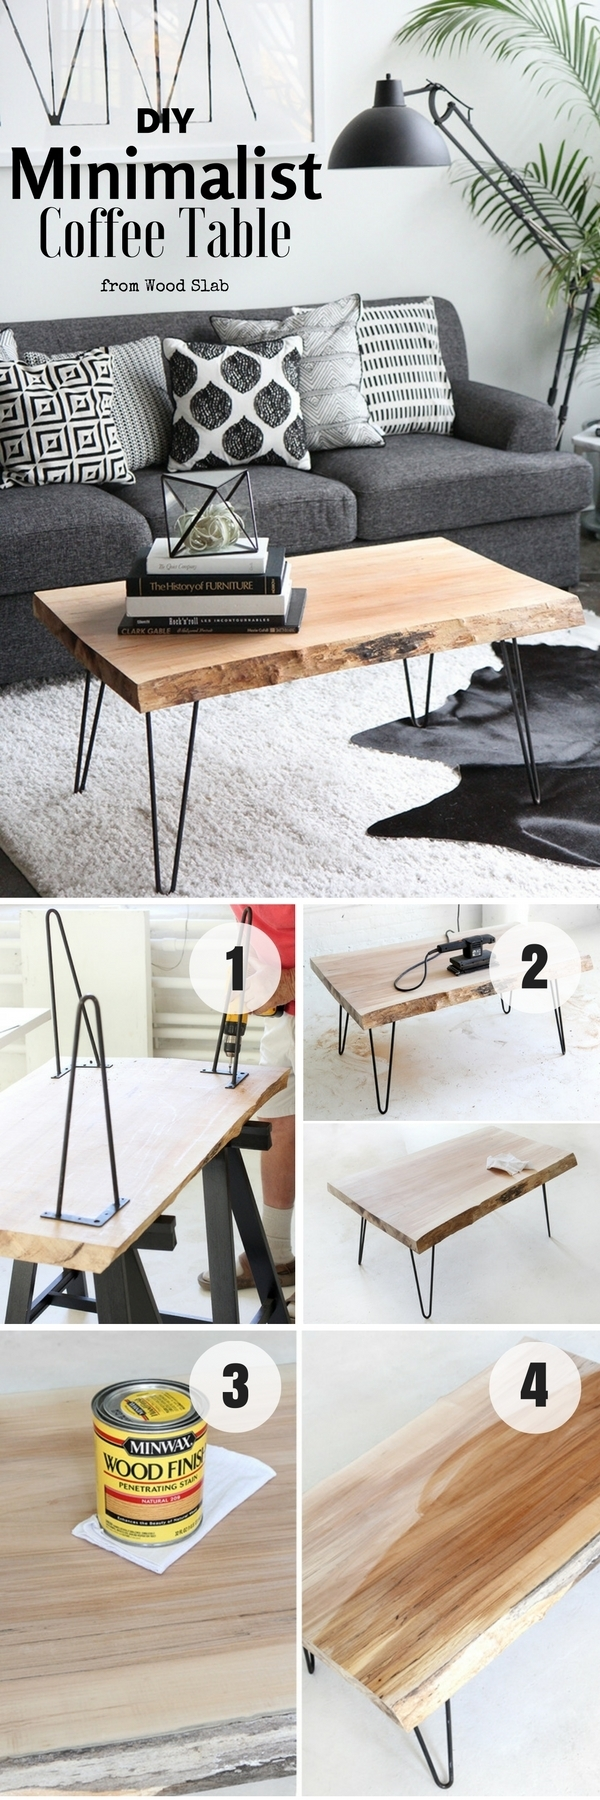 Diy Coffee Table - 40 Easy Ideas You Can Make On A Budget for Jelly Bean Coffee Tables (Image 7 of 30)